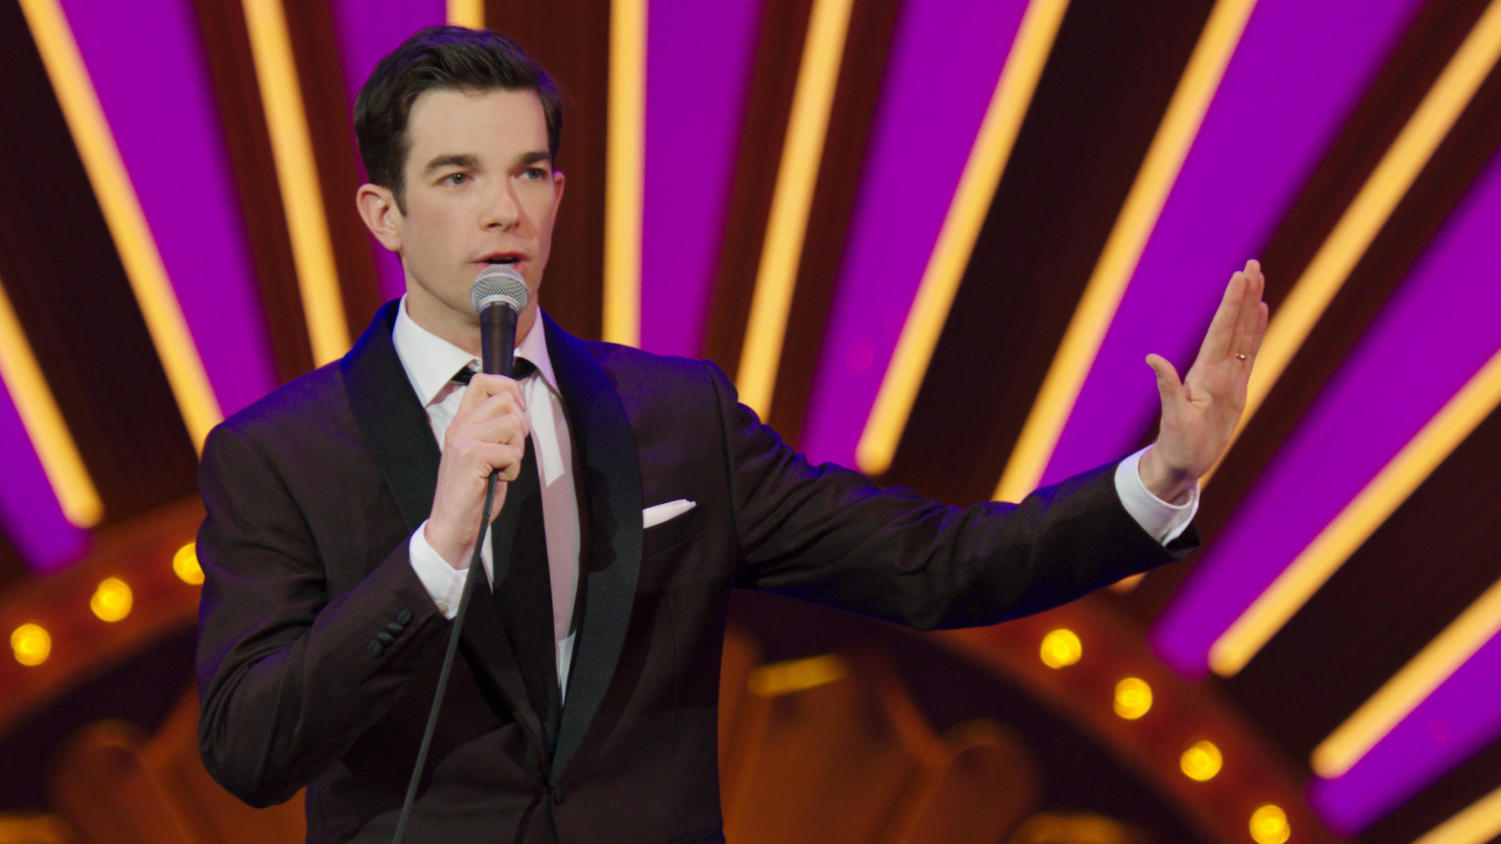 John Mulaney has three series that top the rest.